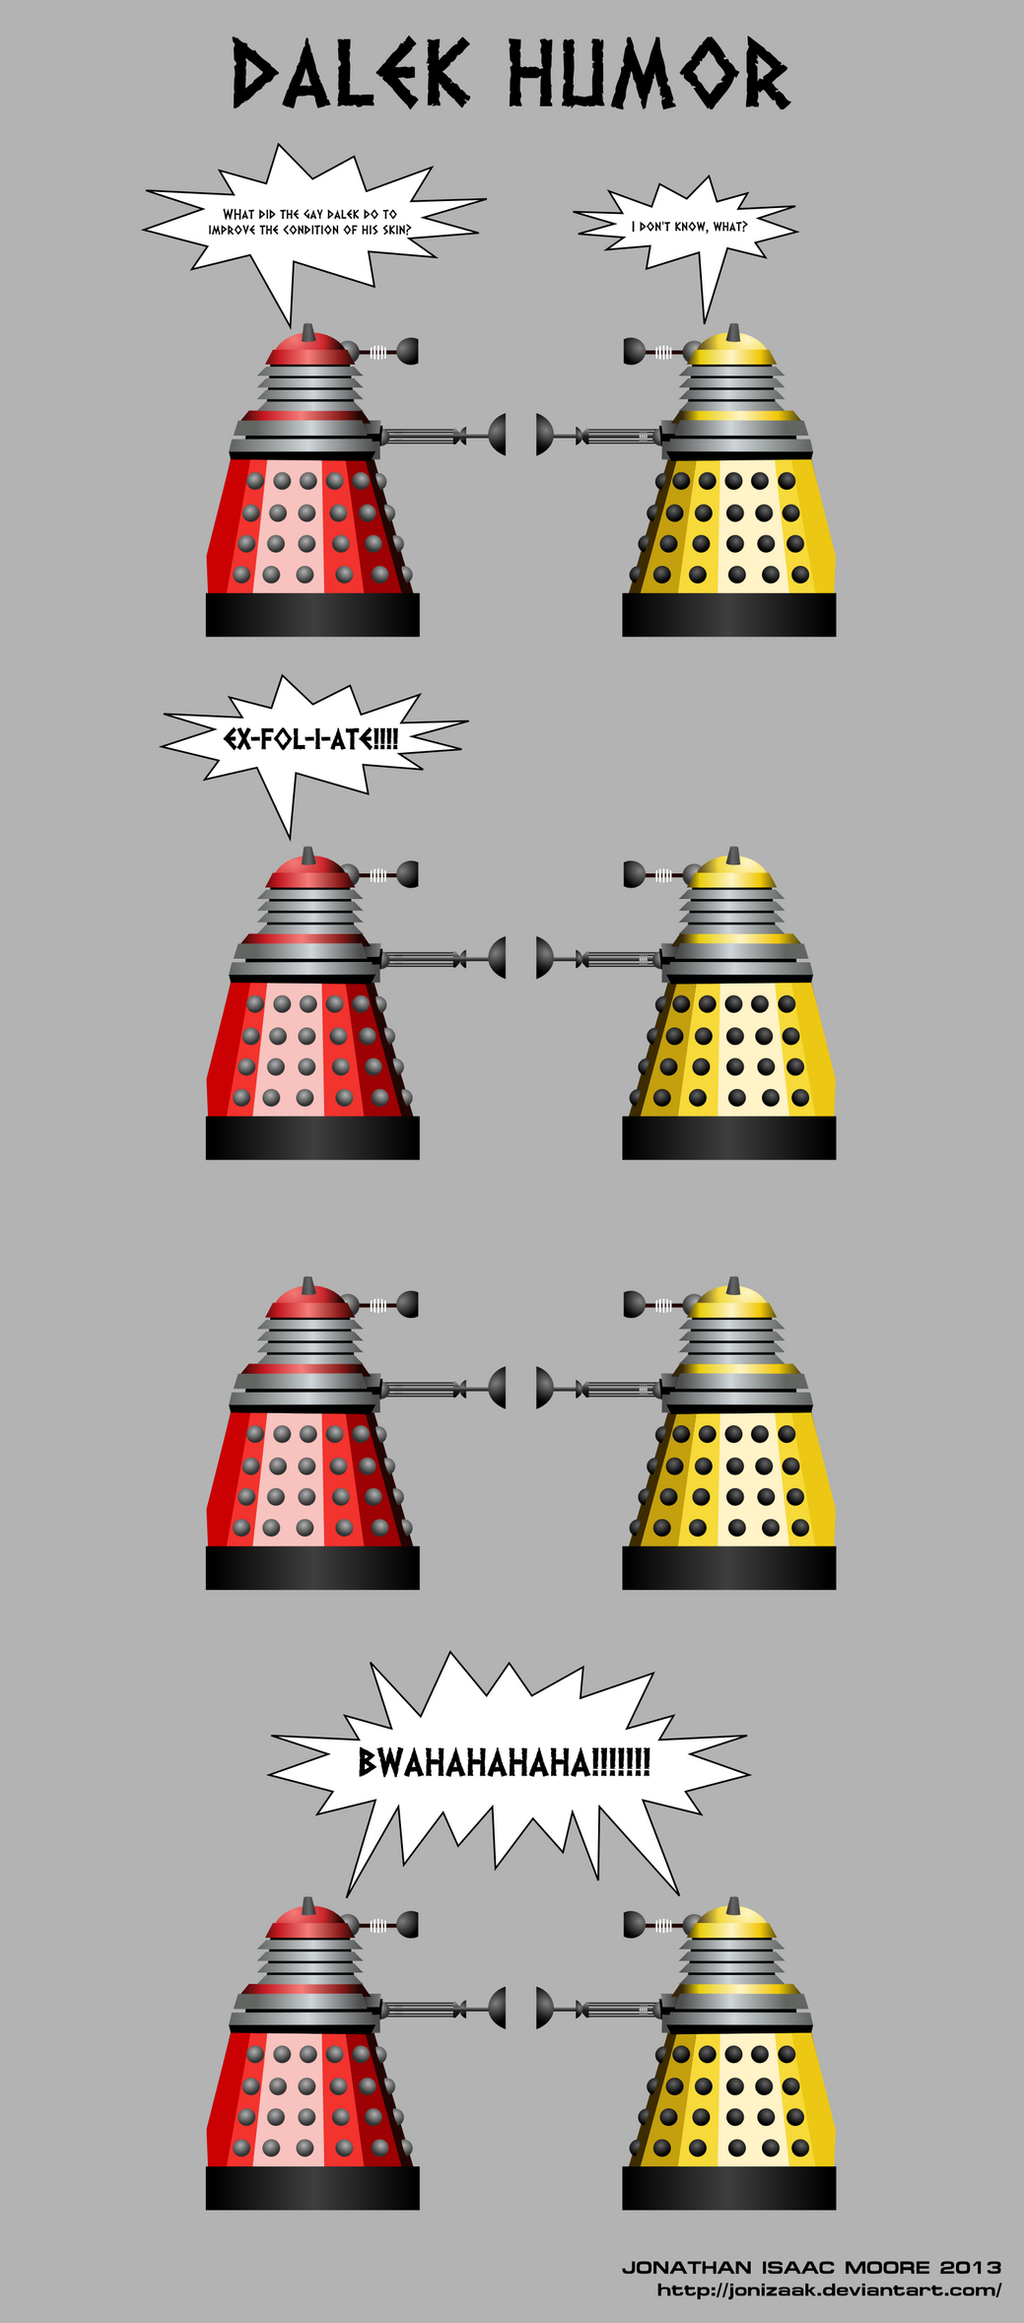 dalek humor by jonizaak on deviantart